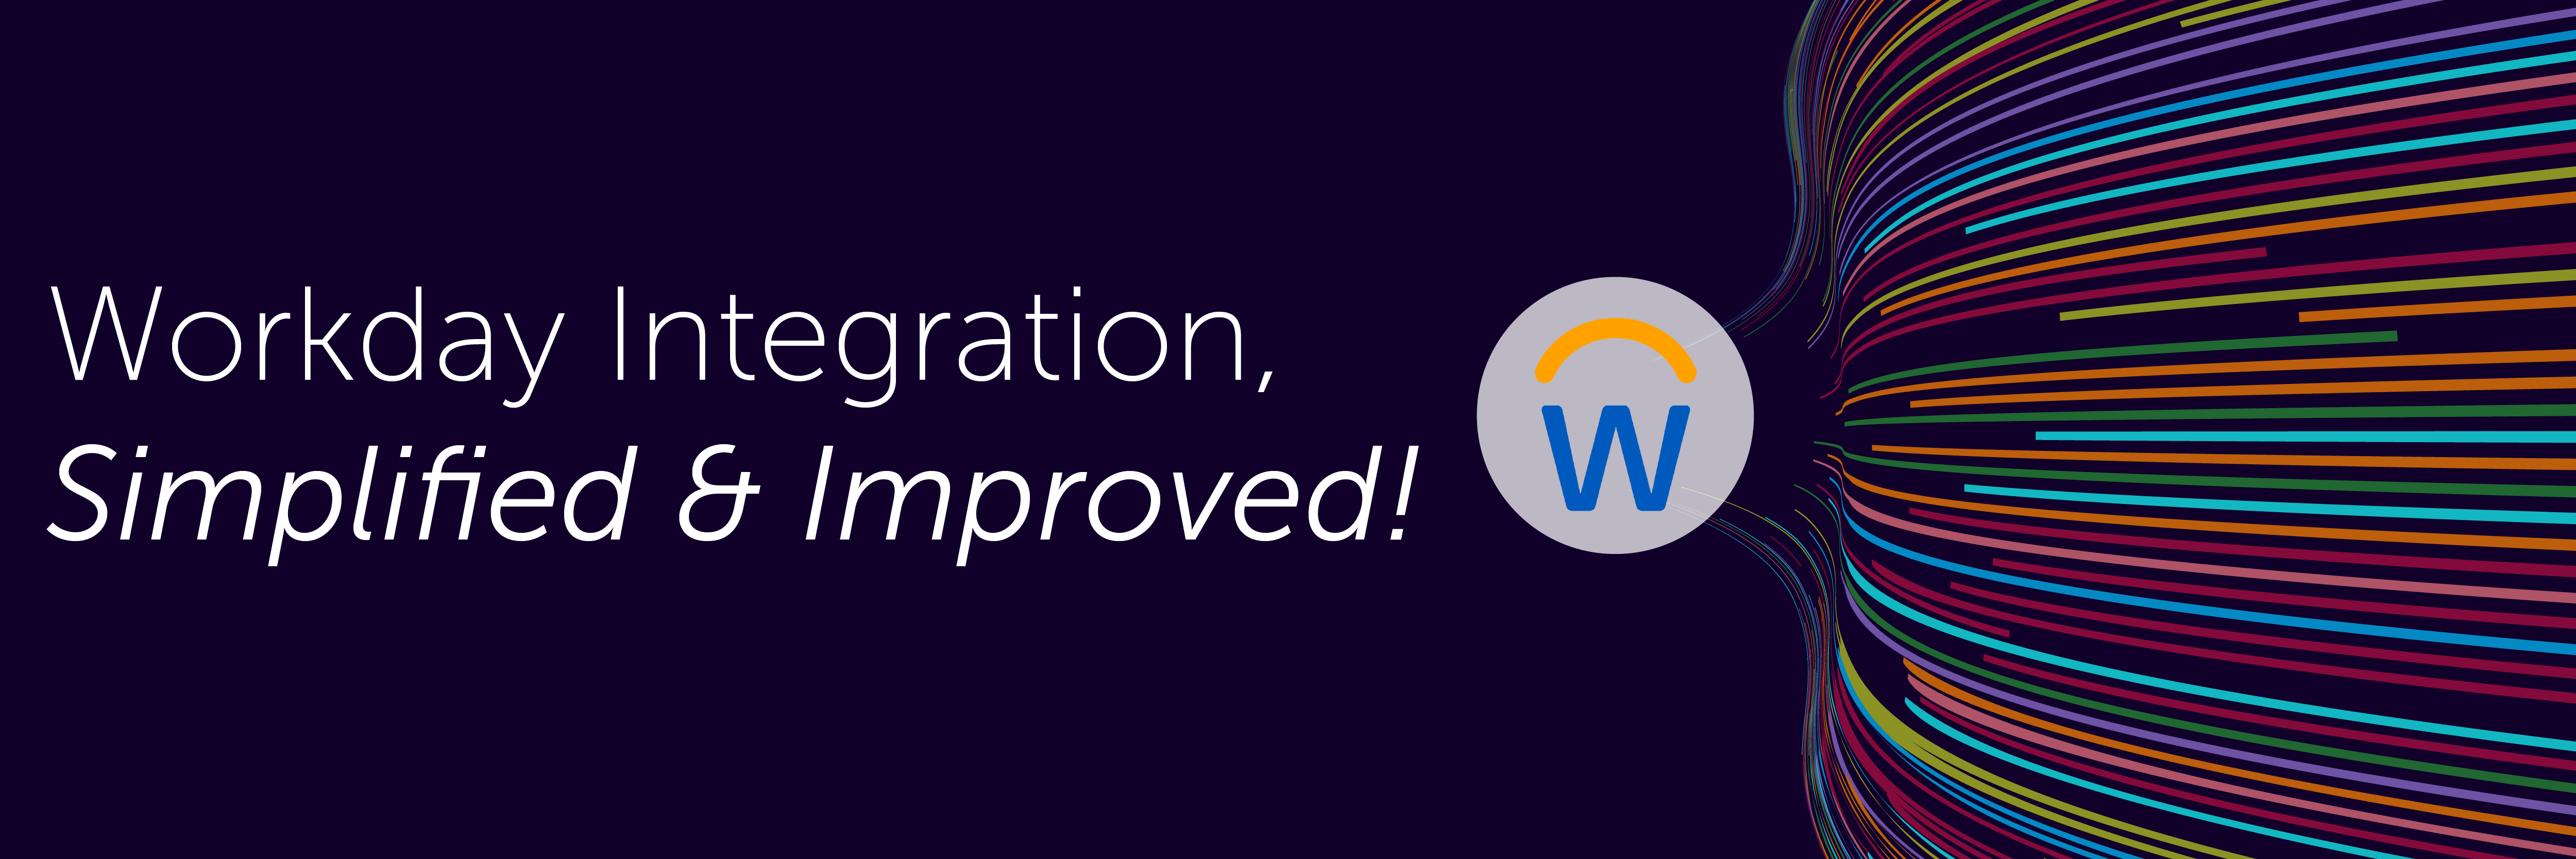 Workday Integration, simplified & improved!